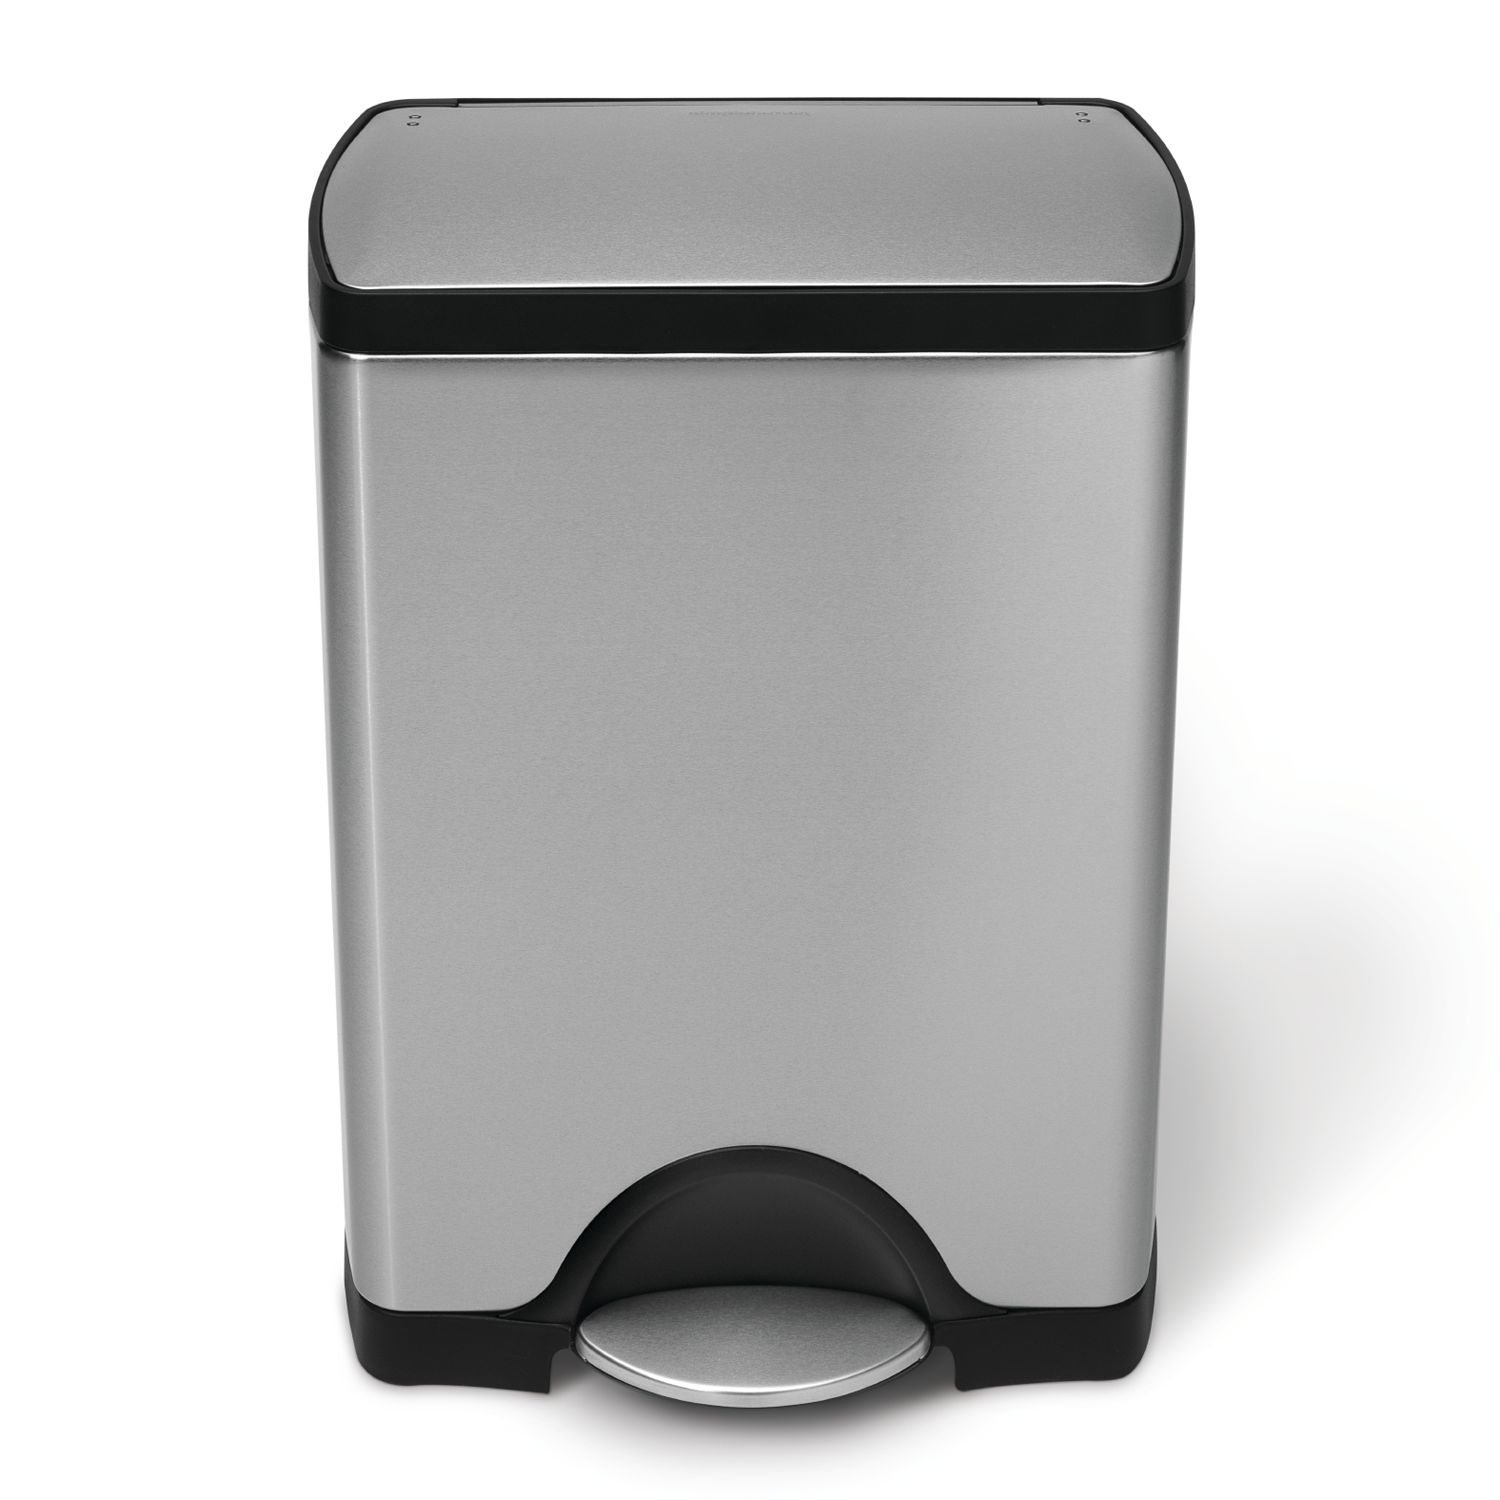 Simplehuman 8 Gallon Rectangular Step Trash Can